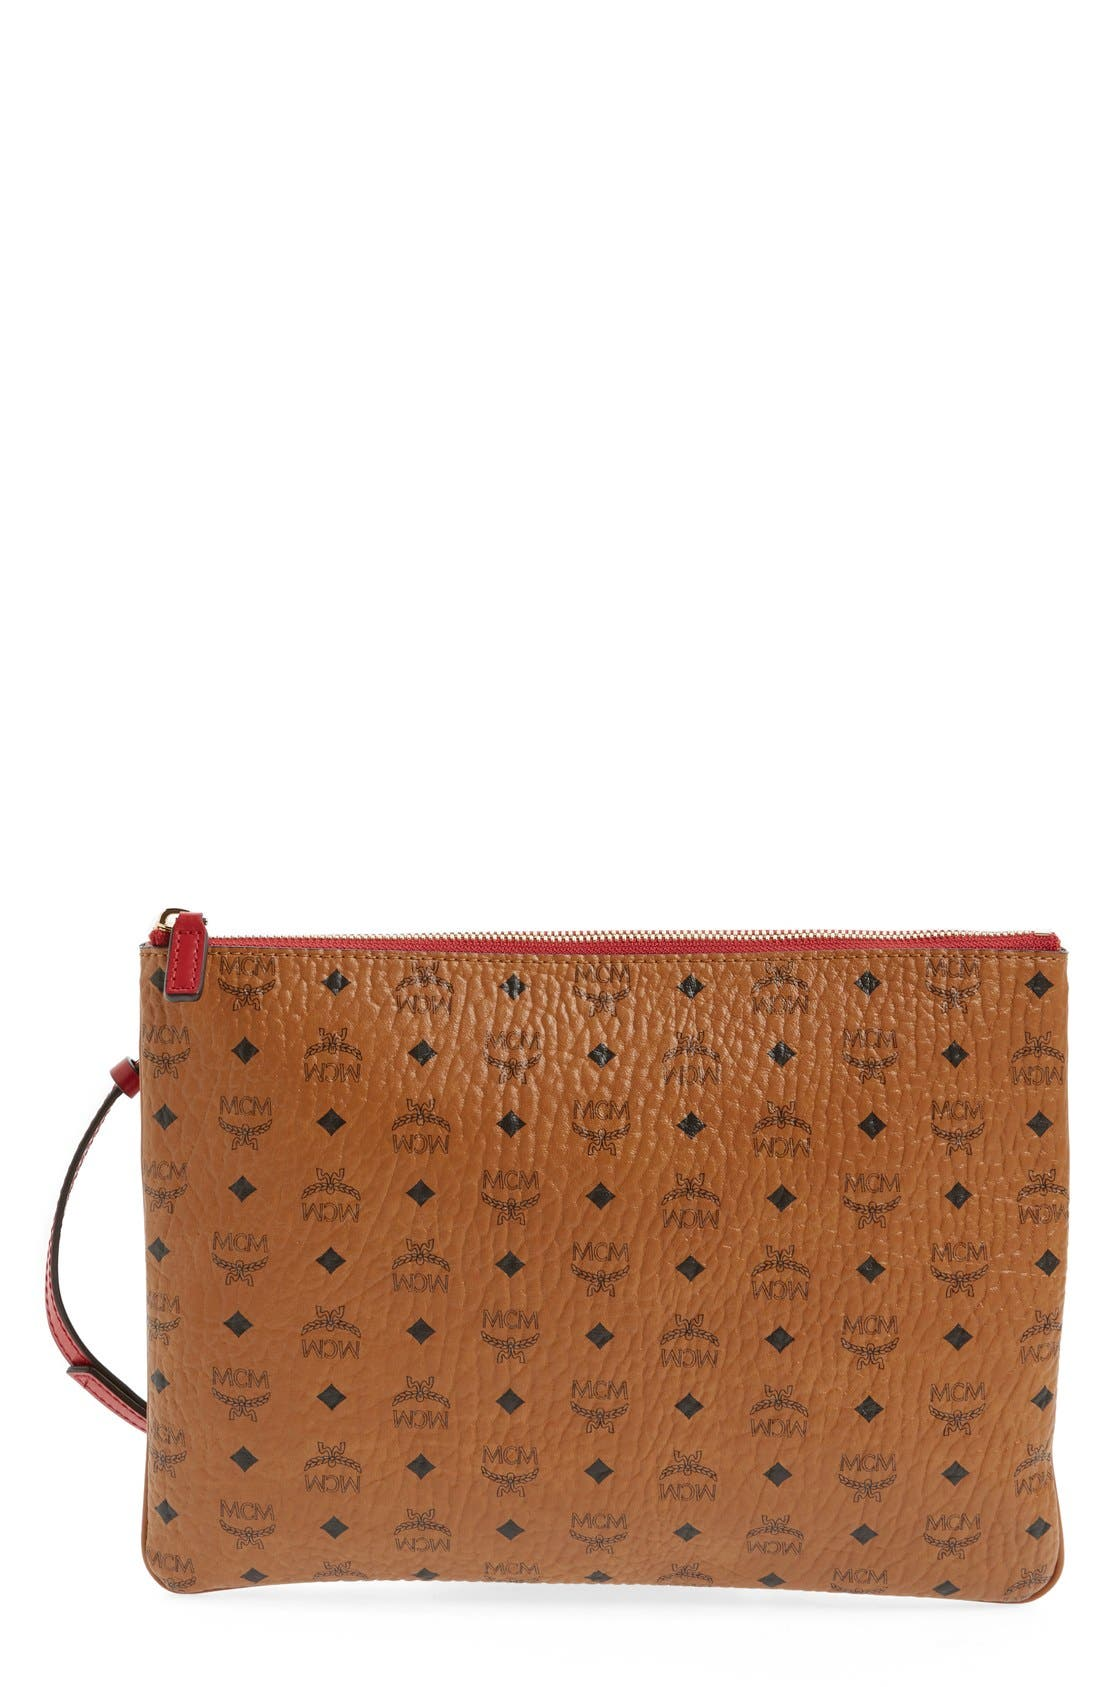 MCM 'Heritage' Convertible Coated Canvas Zip Pouch